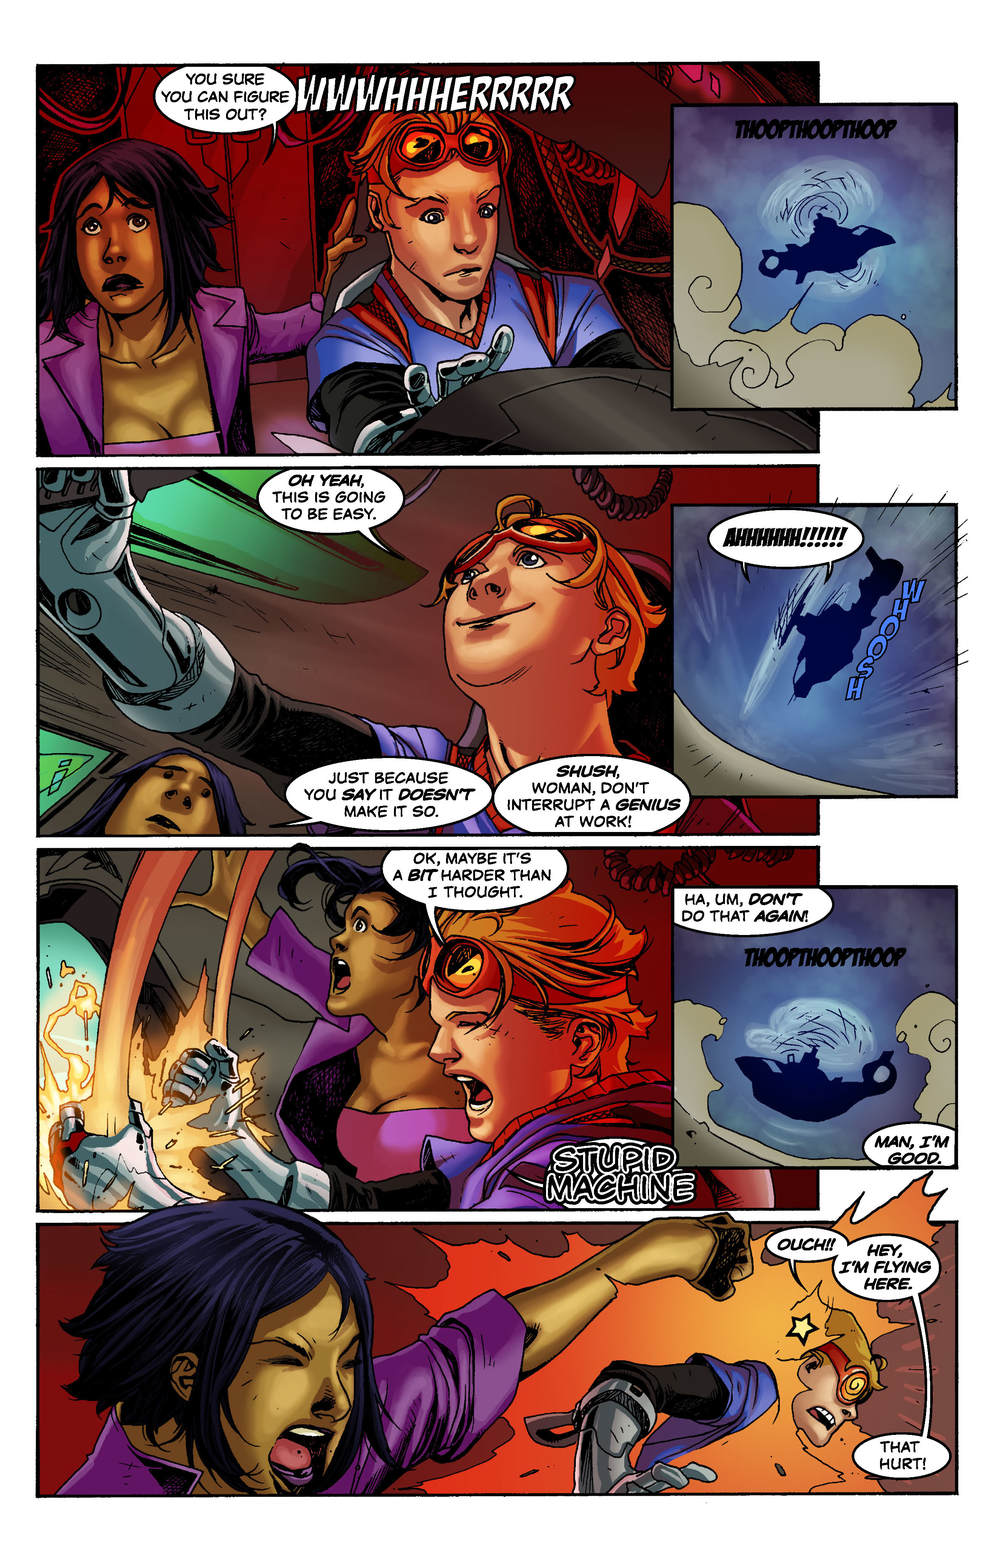 TT_Issue04_Digital_Page_18.jpg